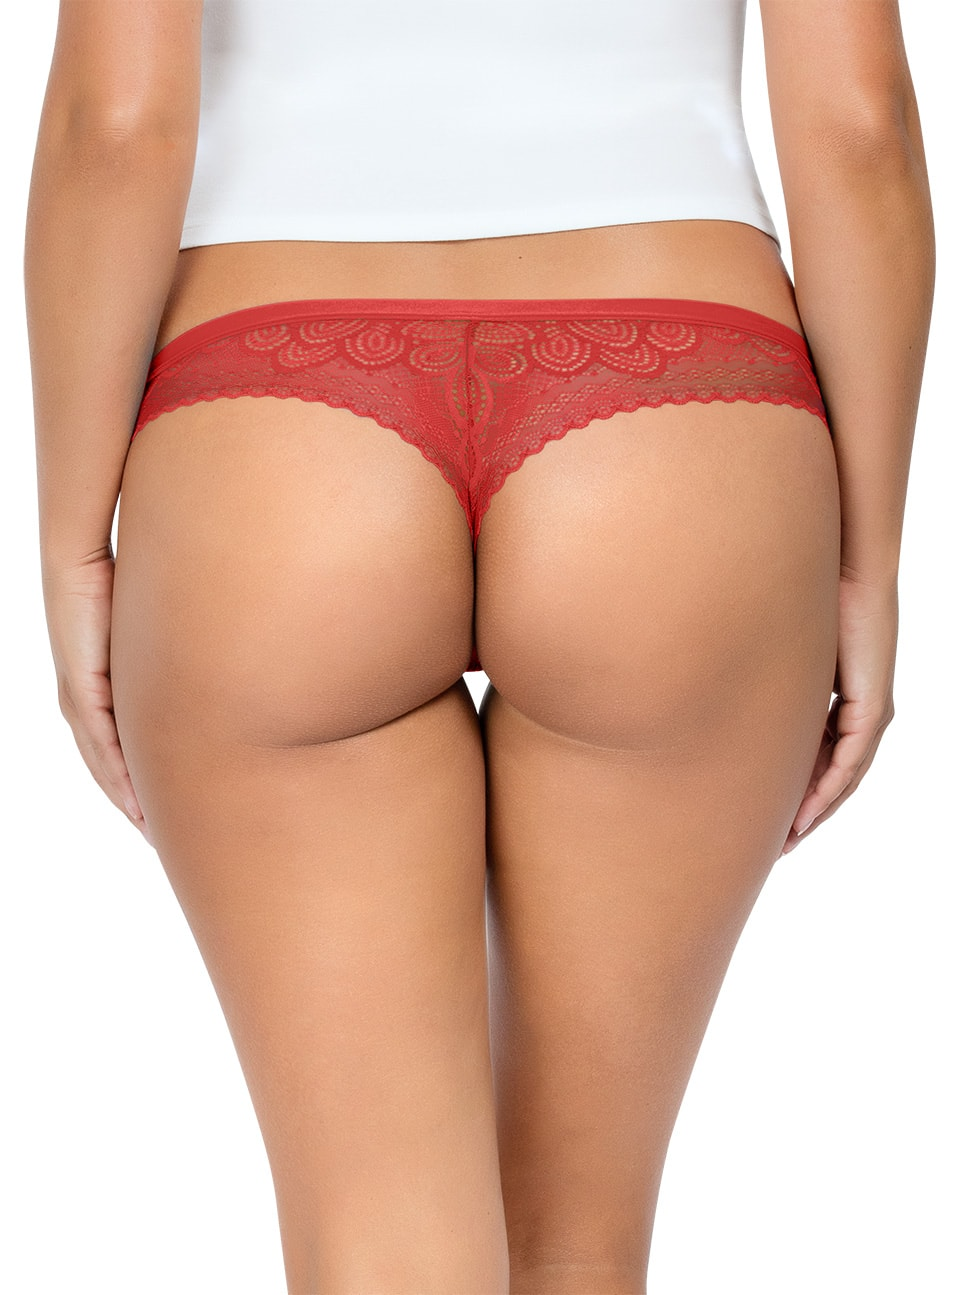 PARFAIT ParfaitPanty SoGlam ThongPP402 Scarlette Back close - Parfait Panty So Glam Thong - Scarlette - PP402